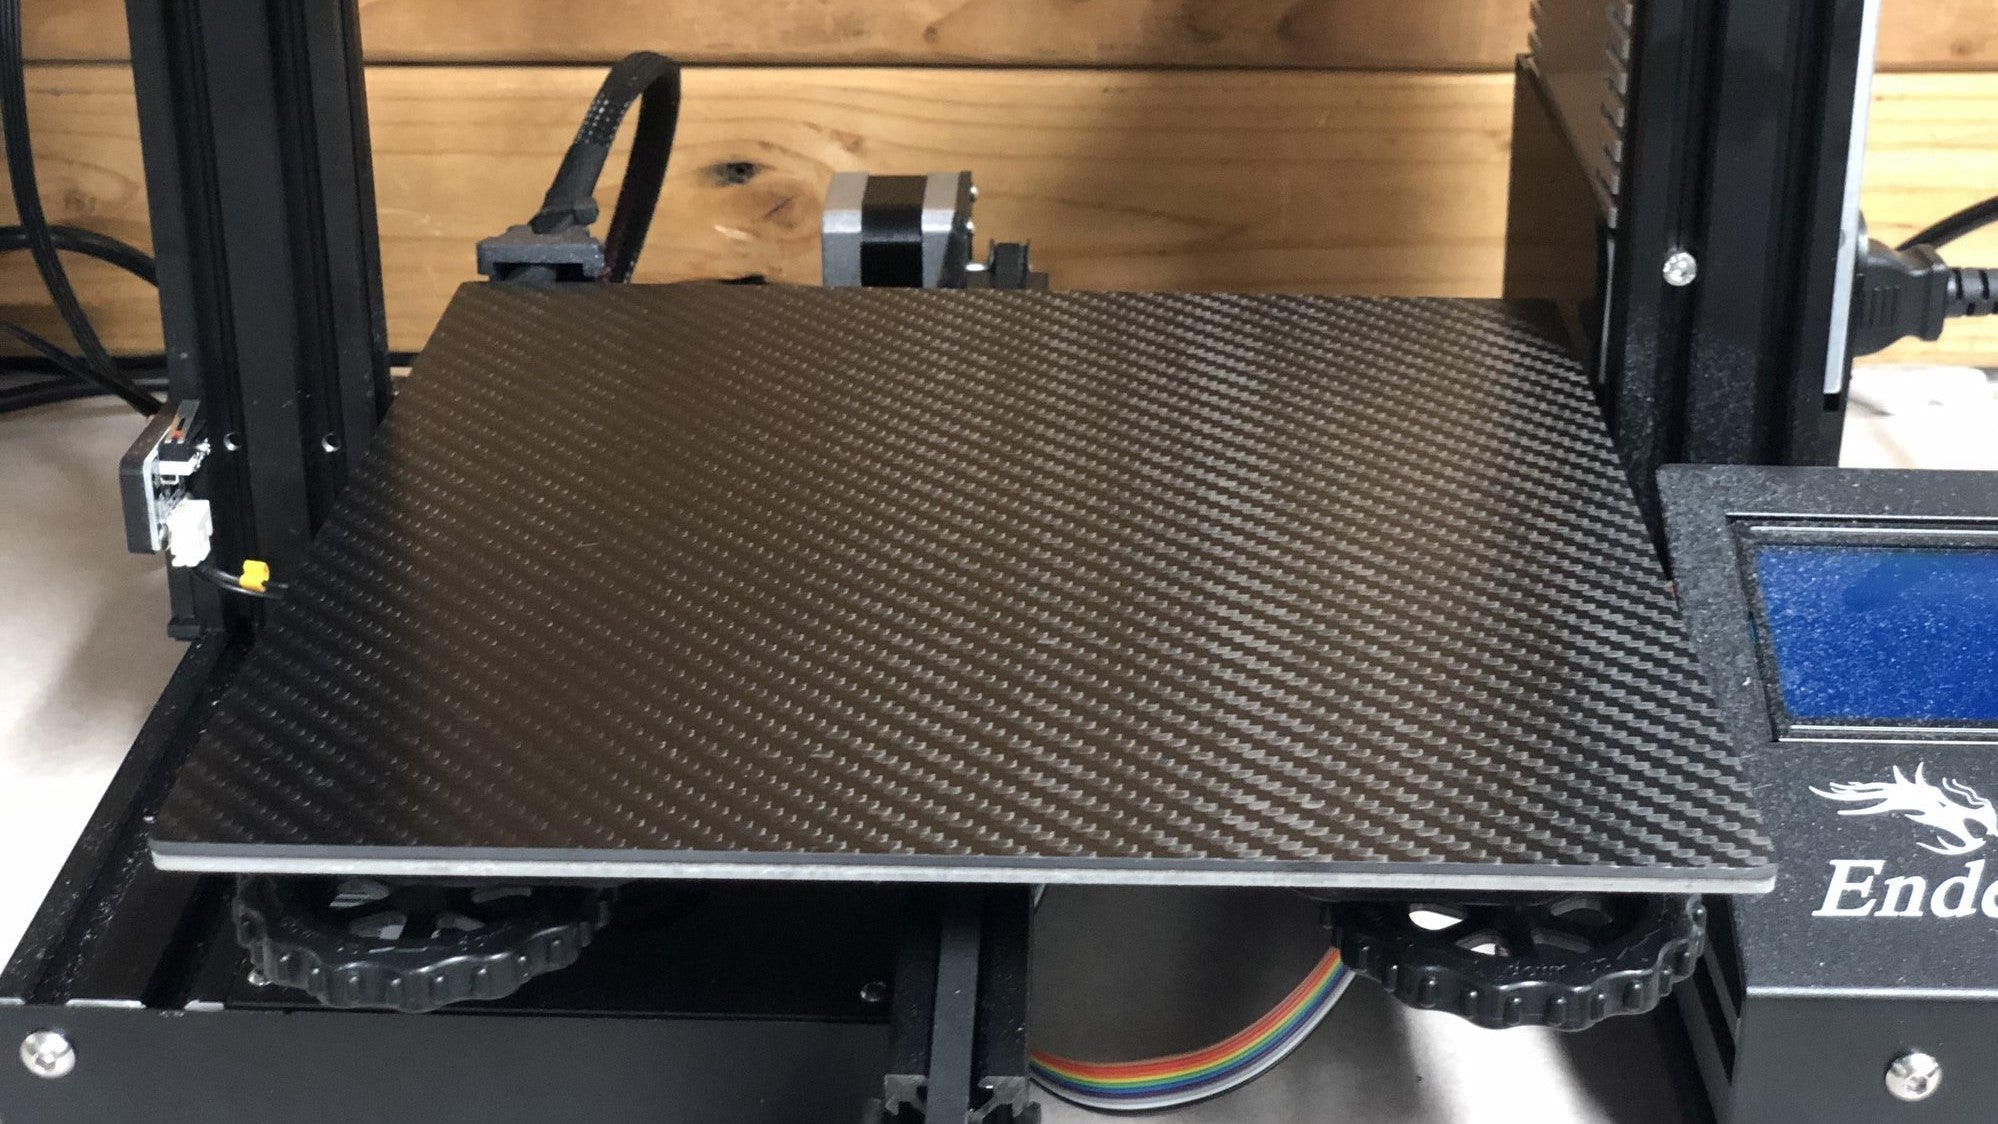 Why Use a Carbon Fiber 3D Print Bed?